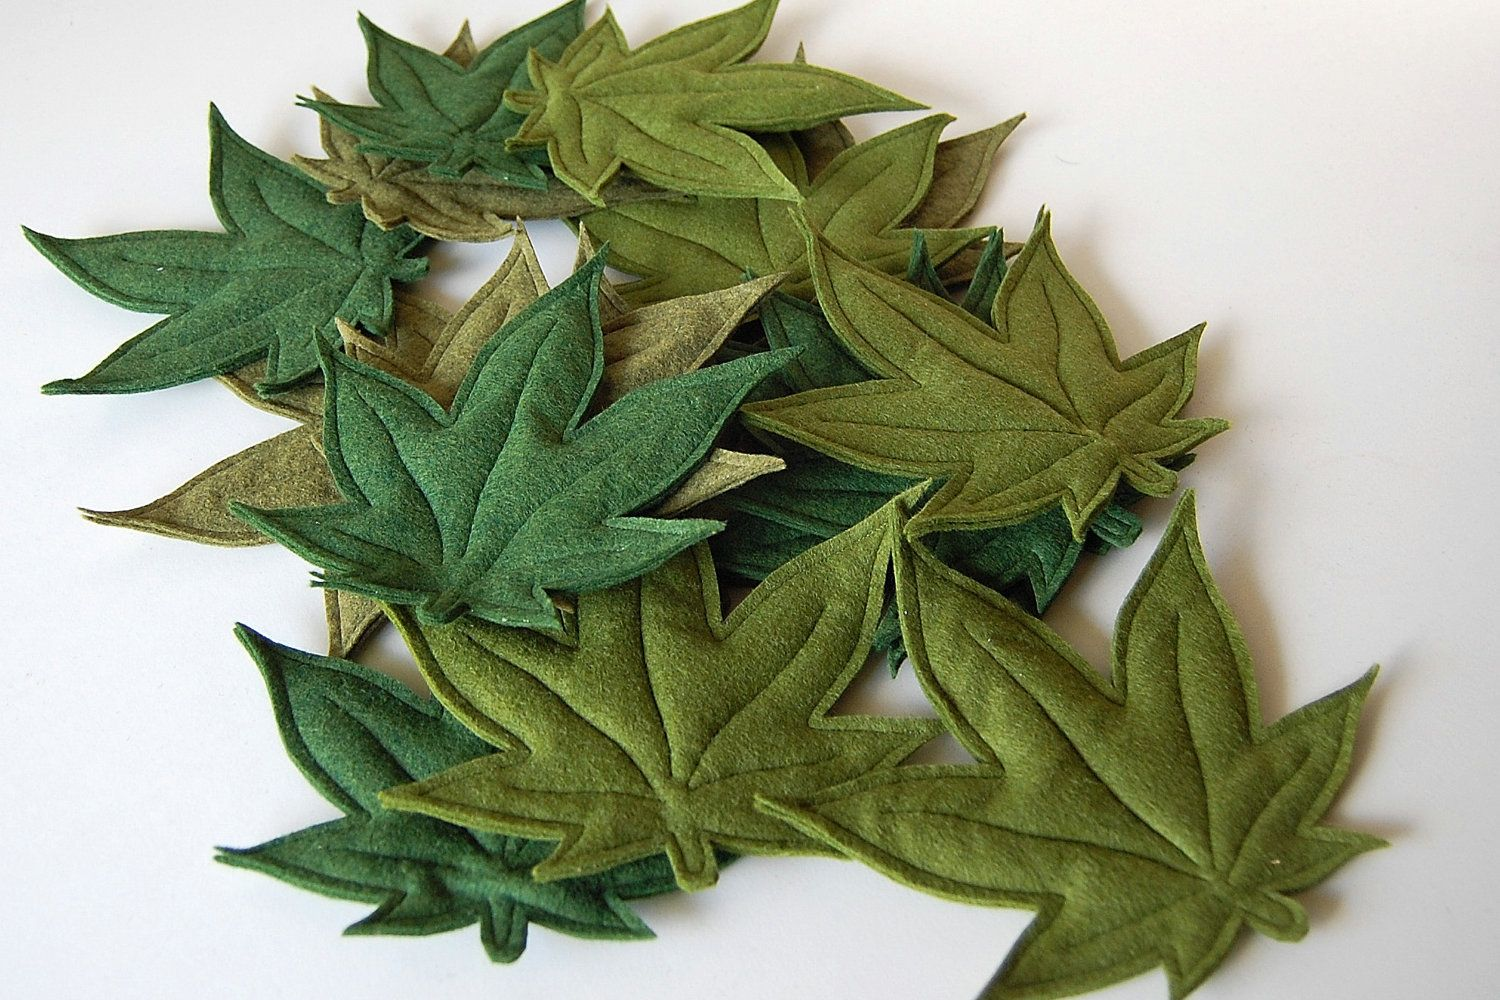 Teeheehee, cannabis Cat Leaf catnip filled toy green felt by lizziebeesthings, $10.00  Could DIY, possibly